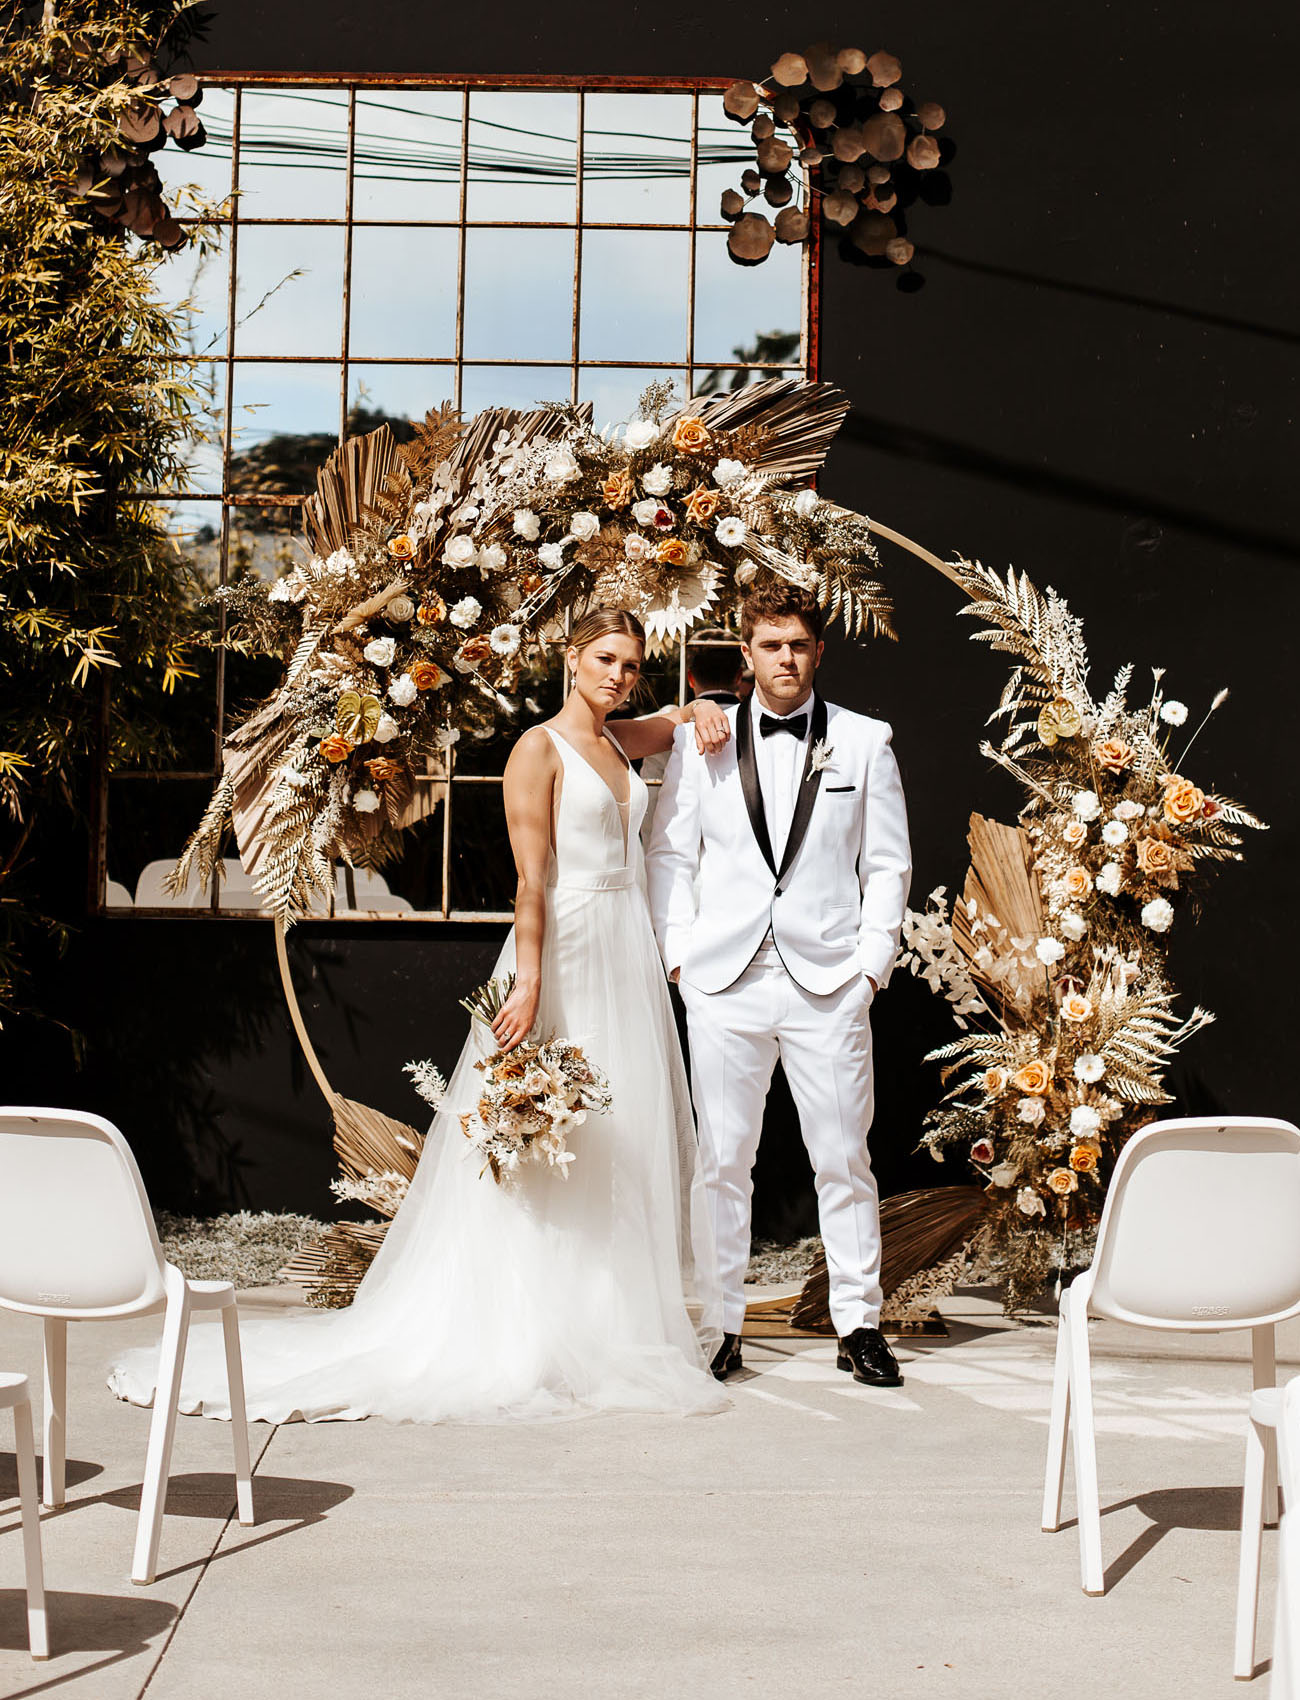 This modern neutral wedding shoot shows how you can pull off an edgy and bold wedding